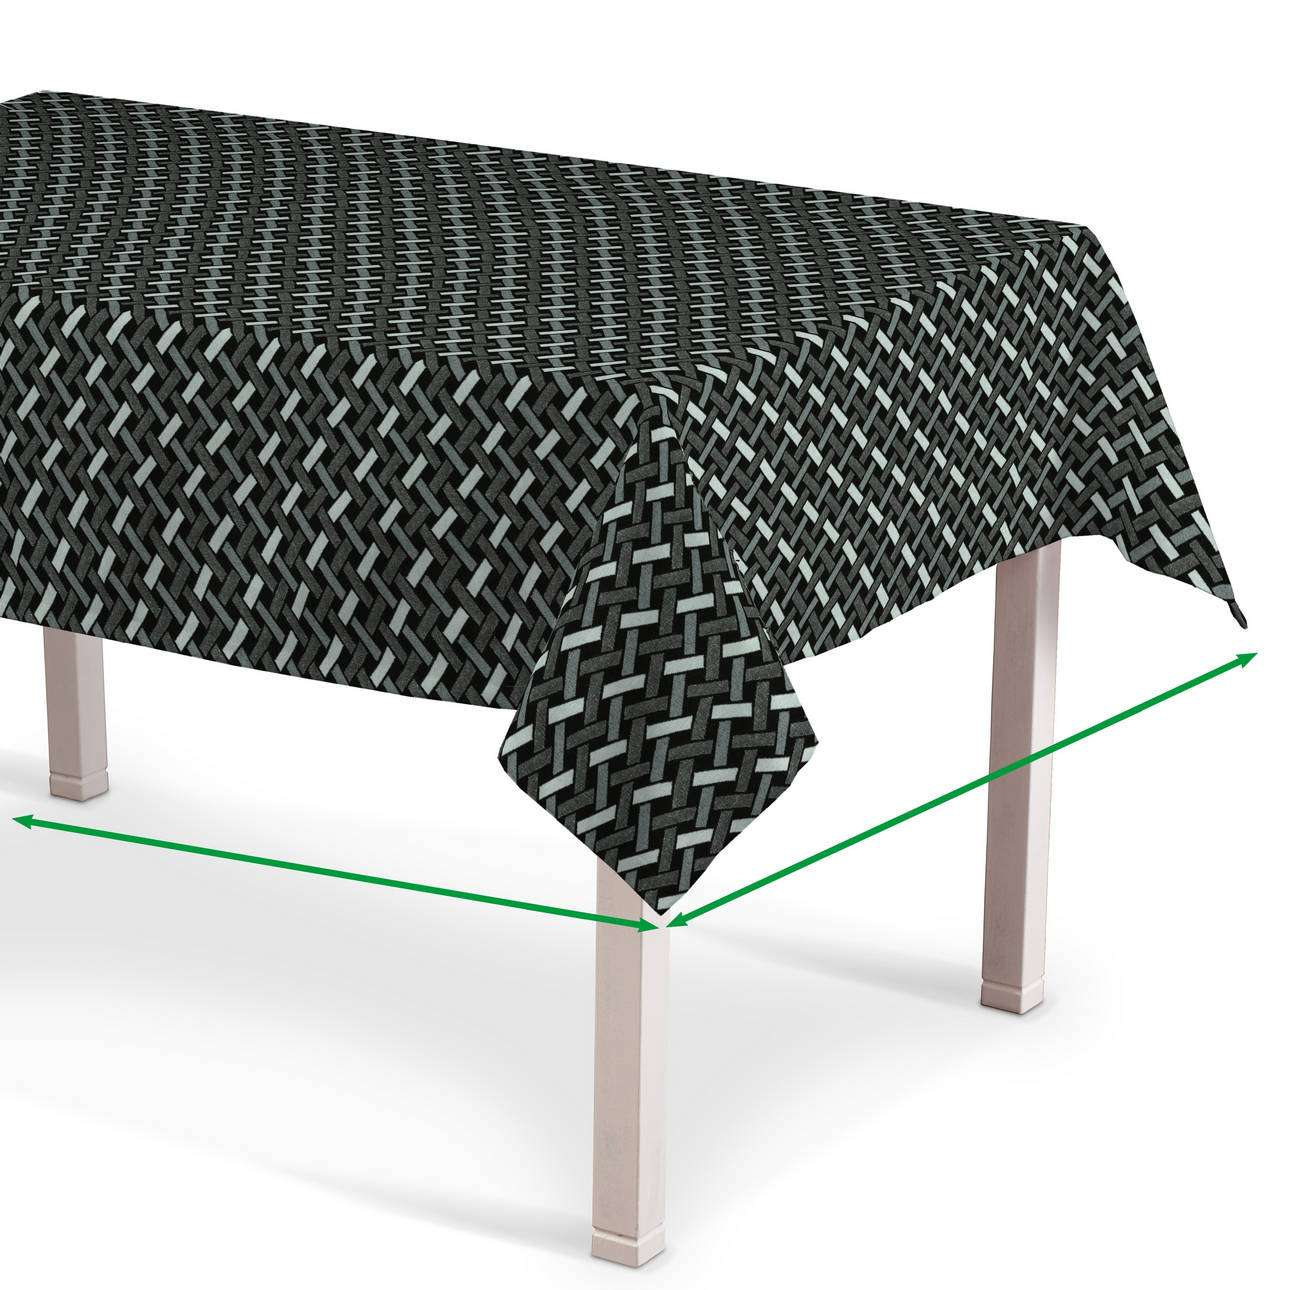 Rectangular tablecloth in collection Black & White, fabric: 142-87